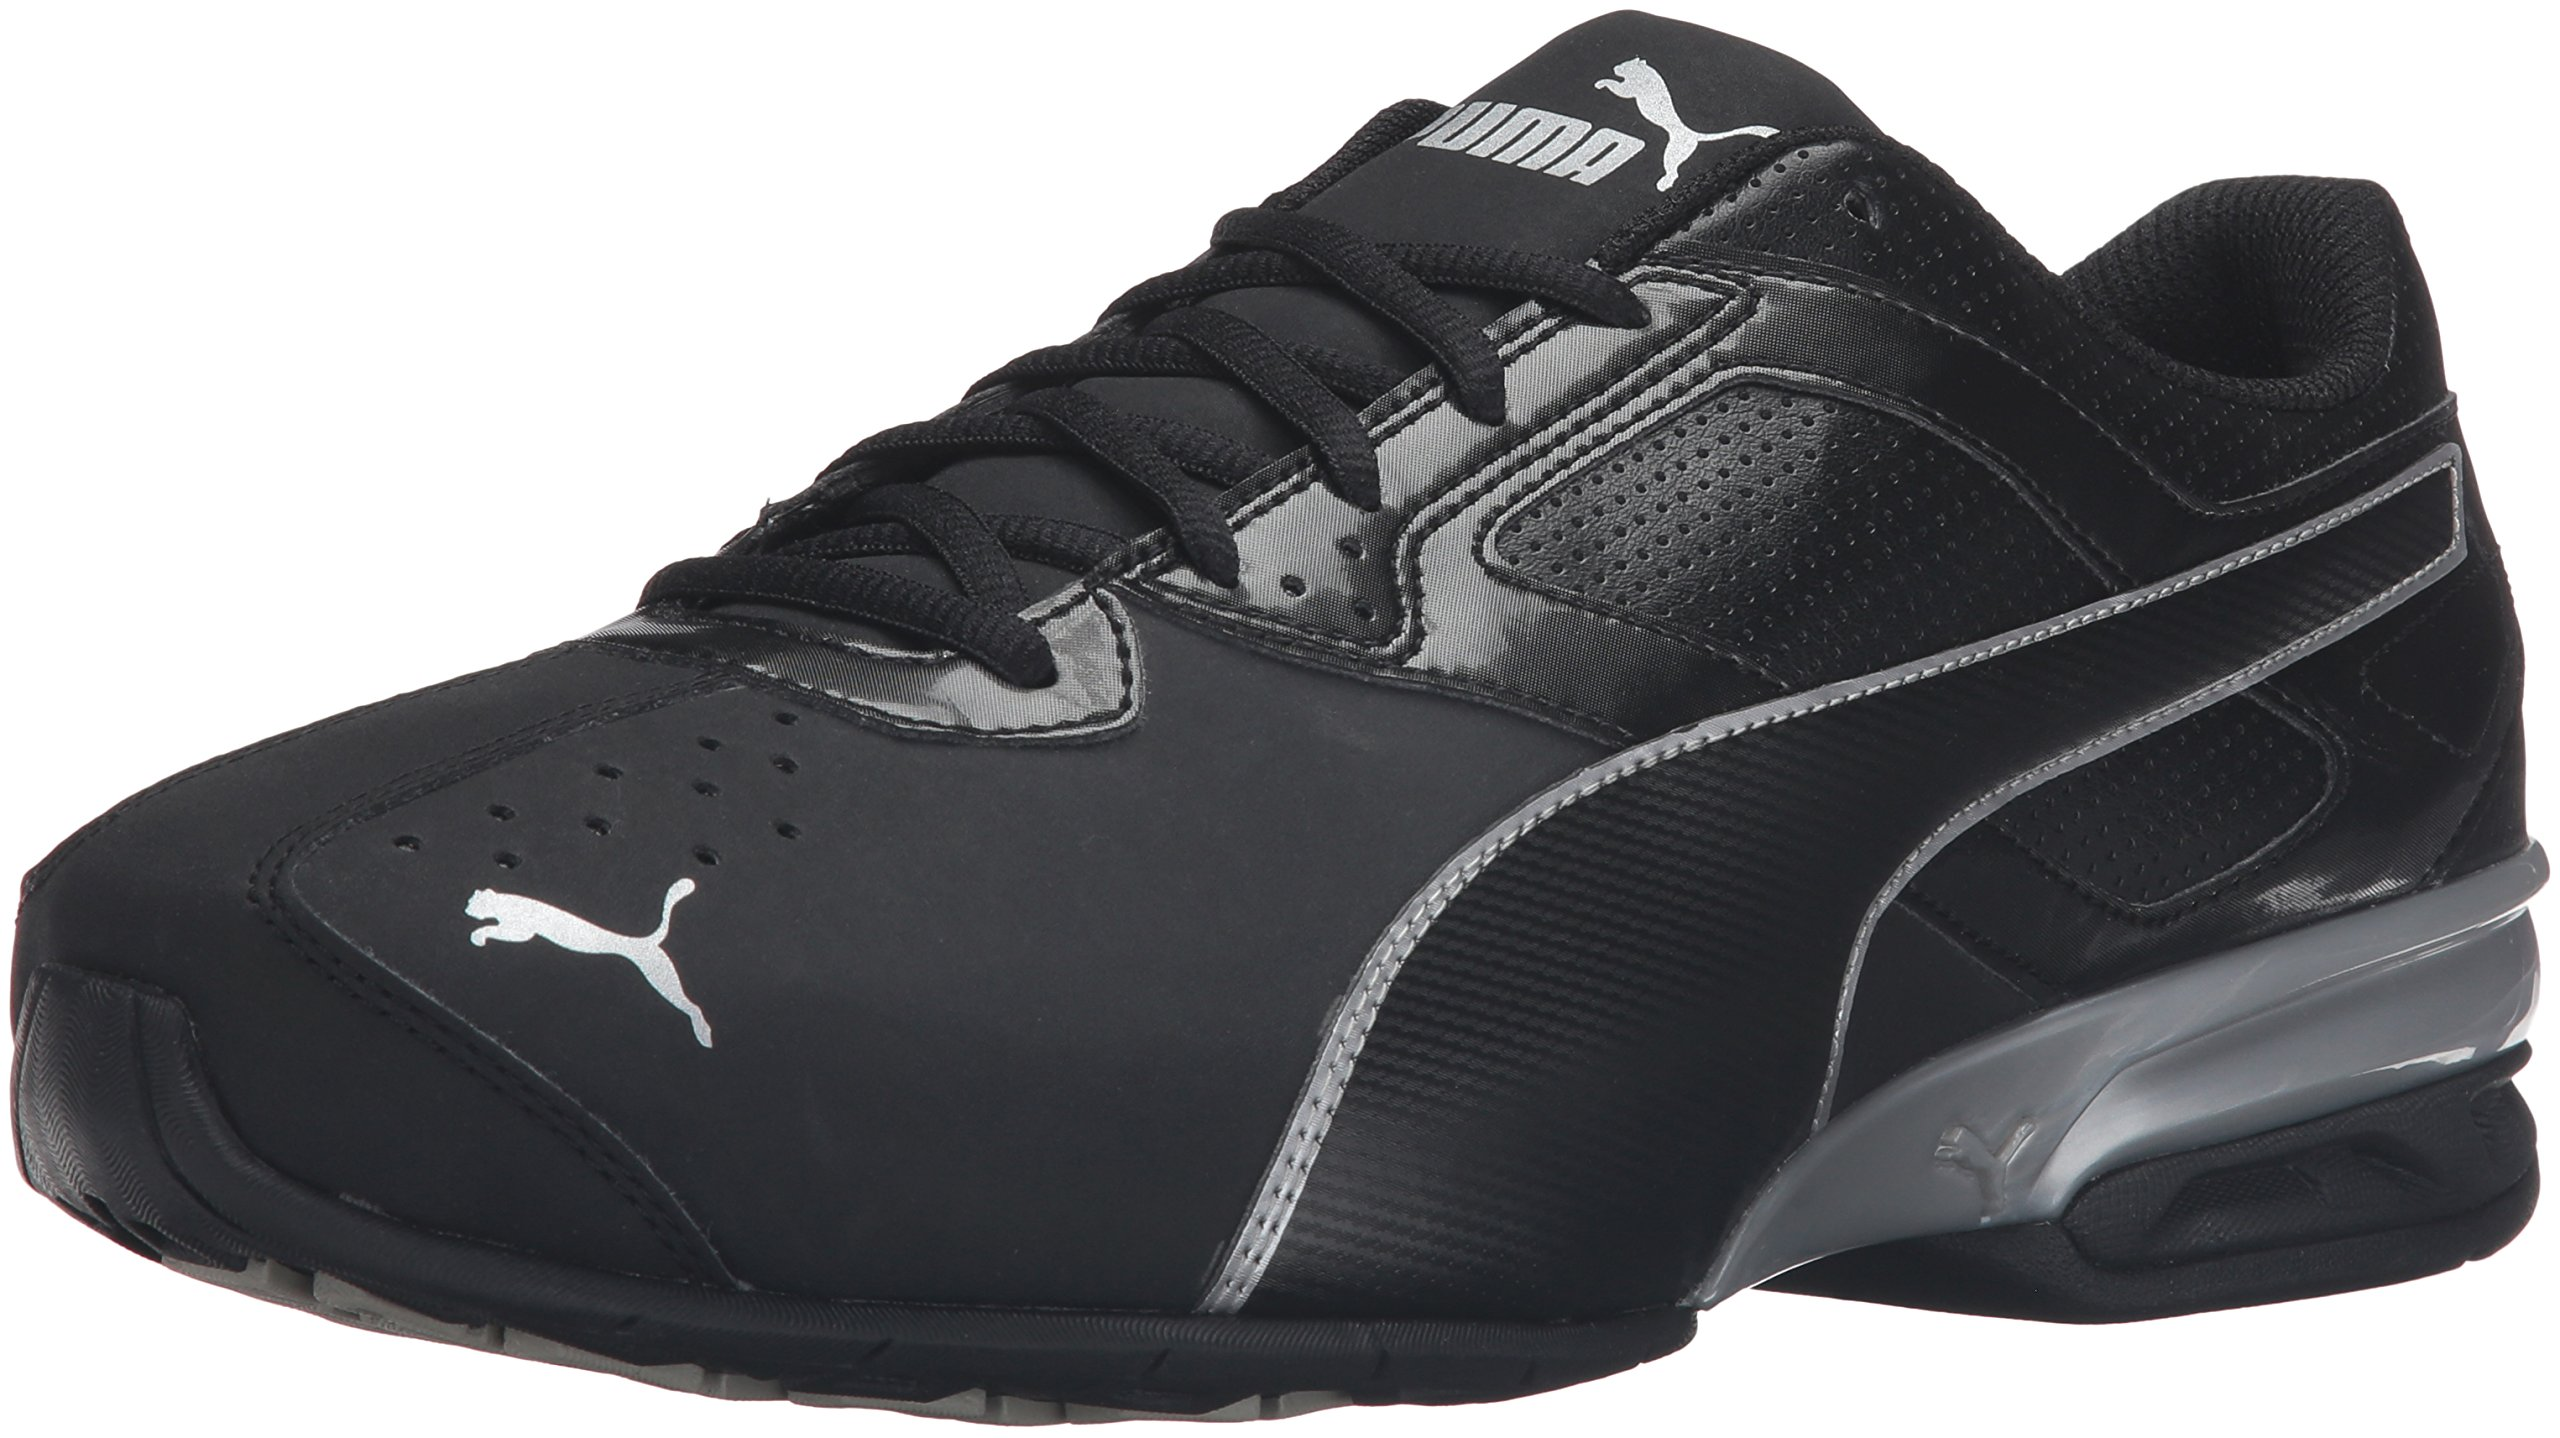 PUMA Men's Tazon 6 FM Puma Black/ Puma Silver Running Shoe - 10.5 D(M) US by PUMA